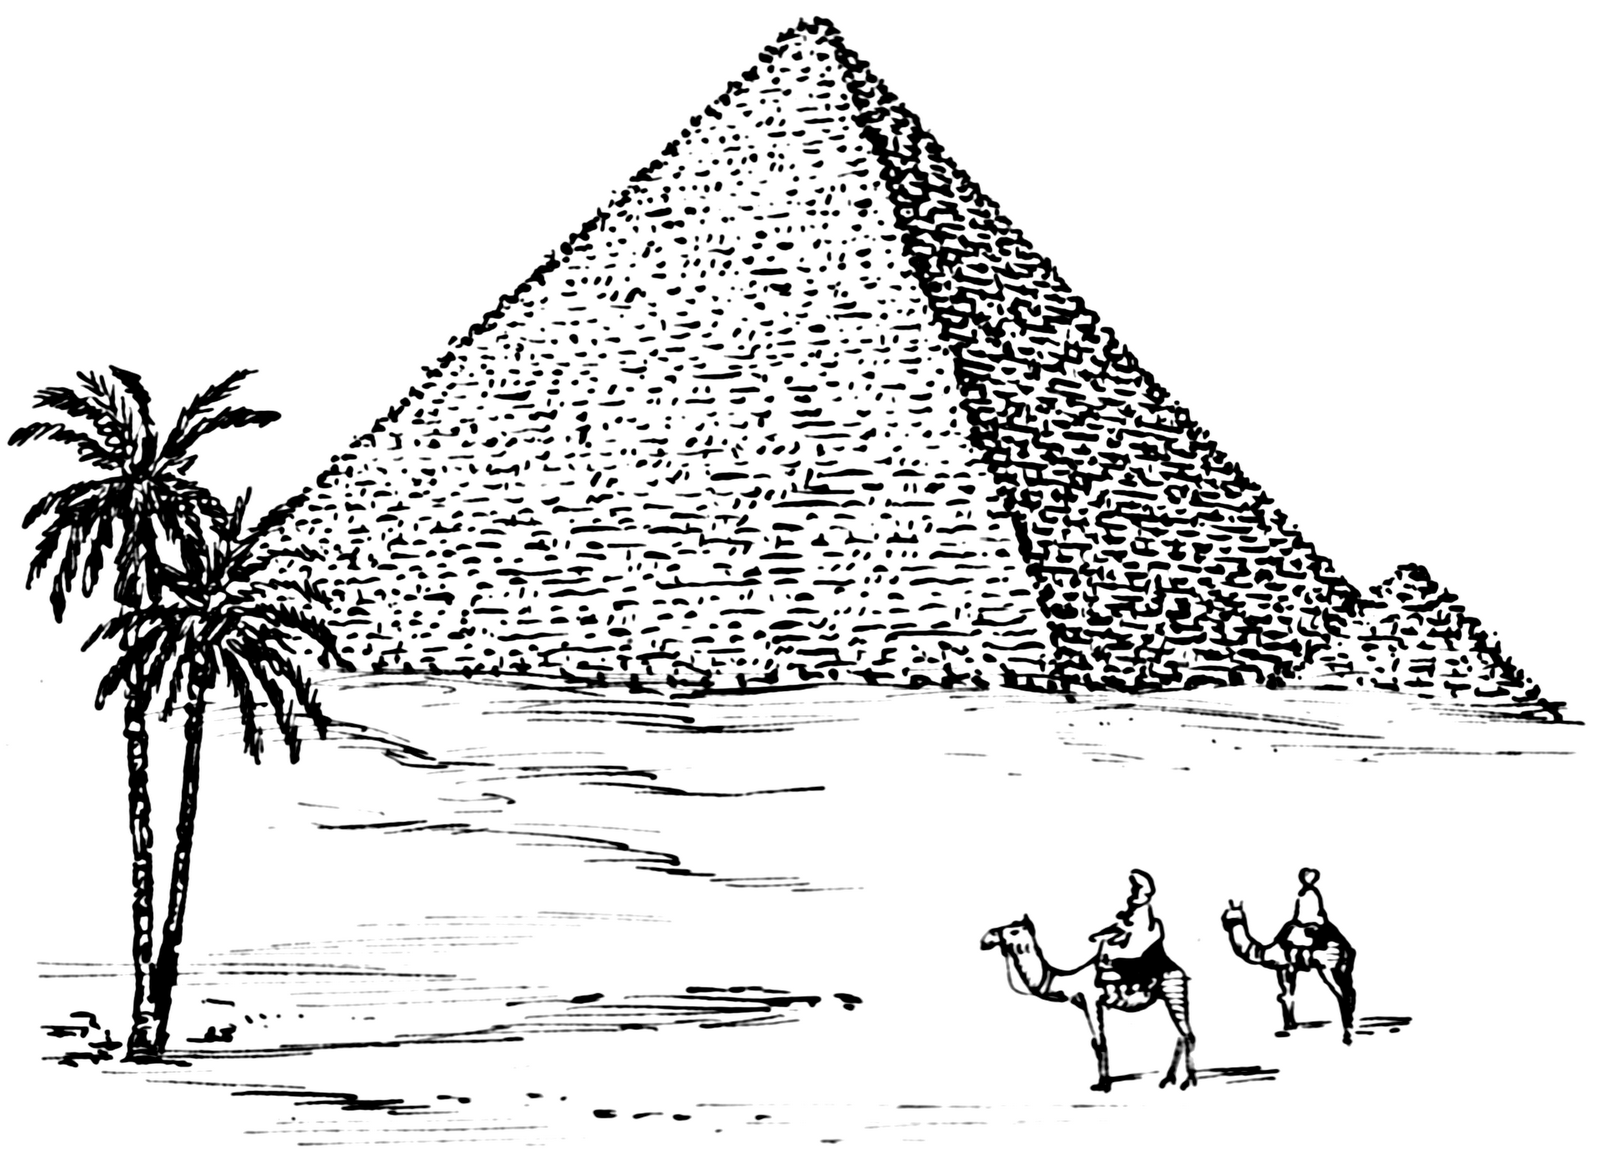 Pyramid Drawing | How to Draw | Pinterest | Mythology, Sketches and ...